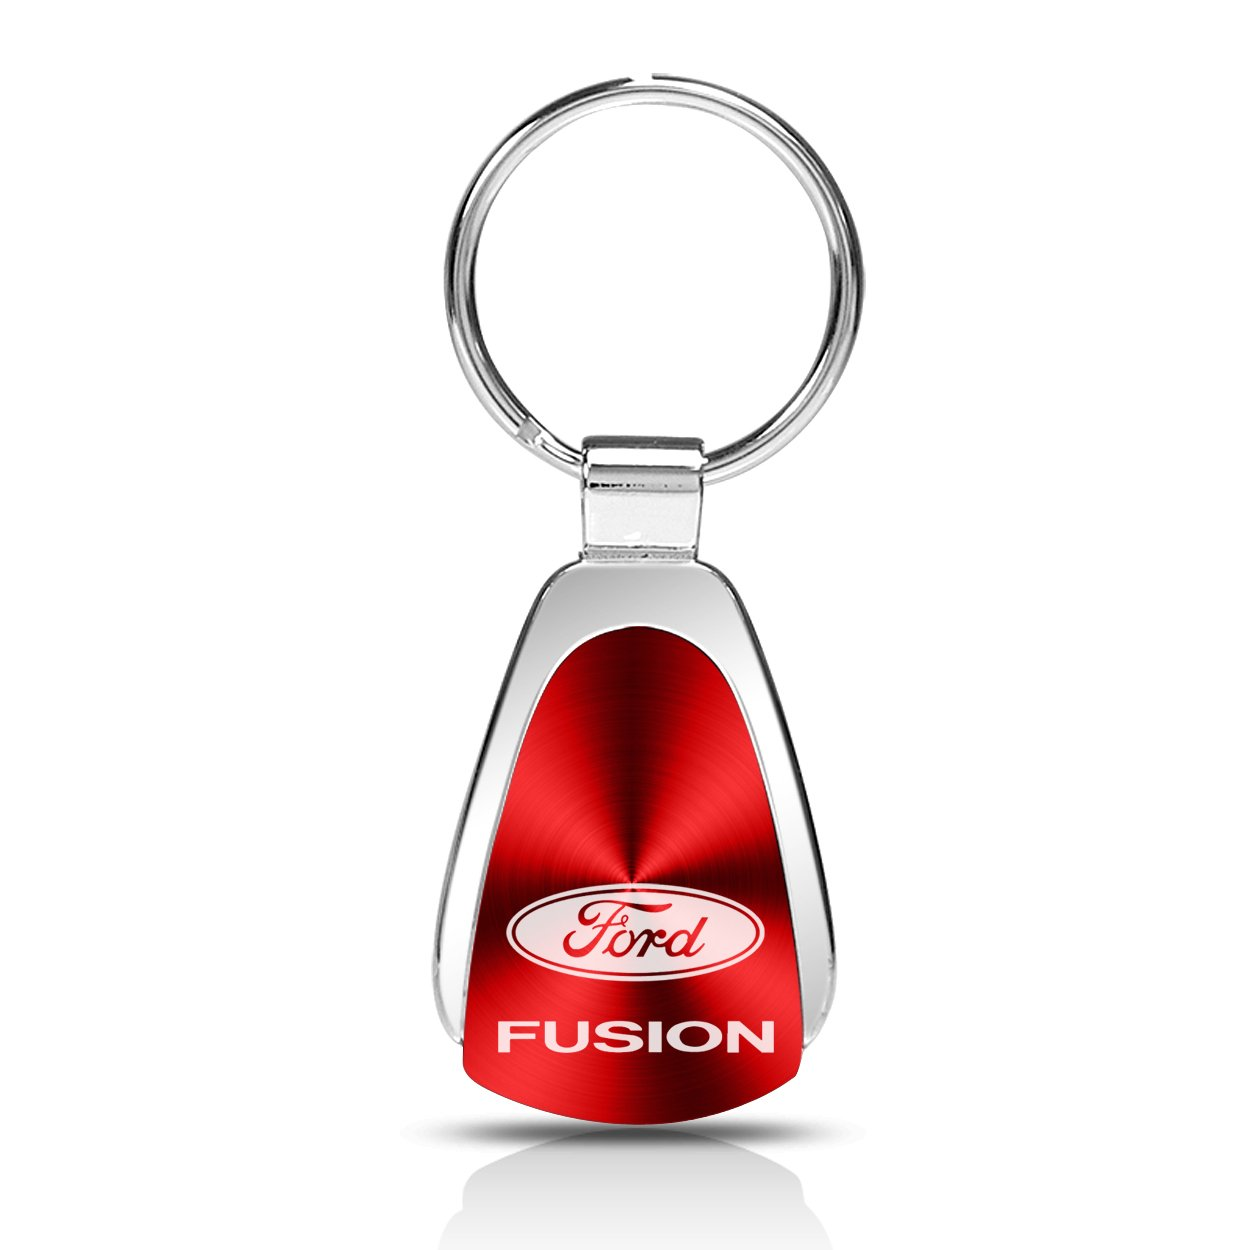 Ford Fusion Red Tear Drop Key Chain Au-Tomotive Gold INC